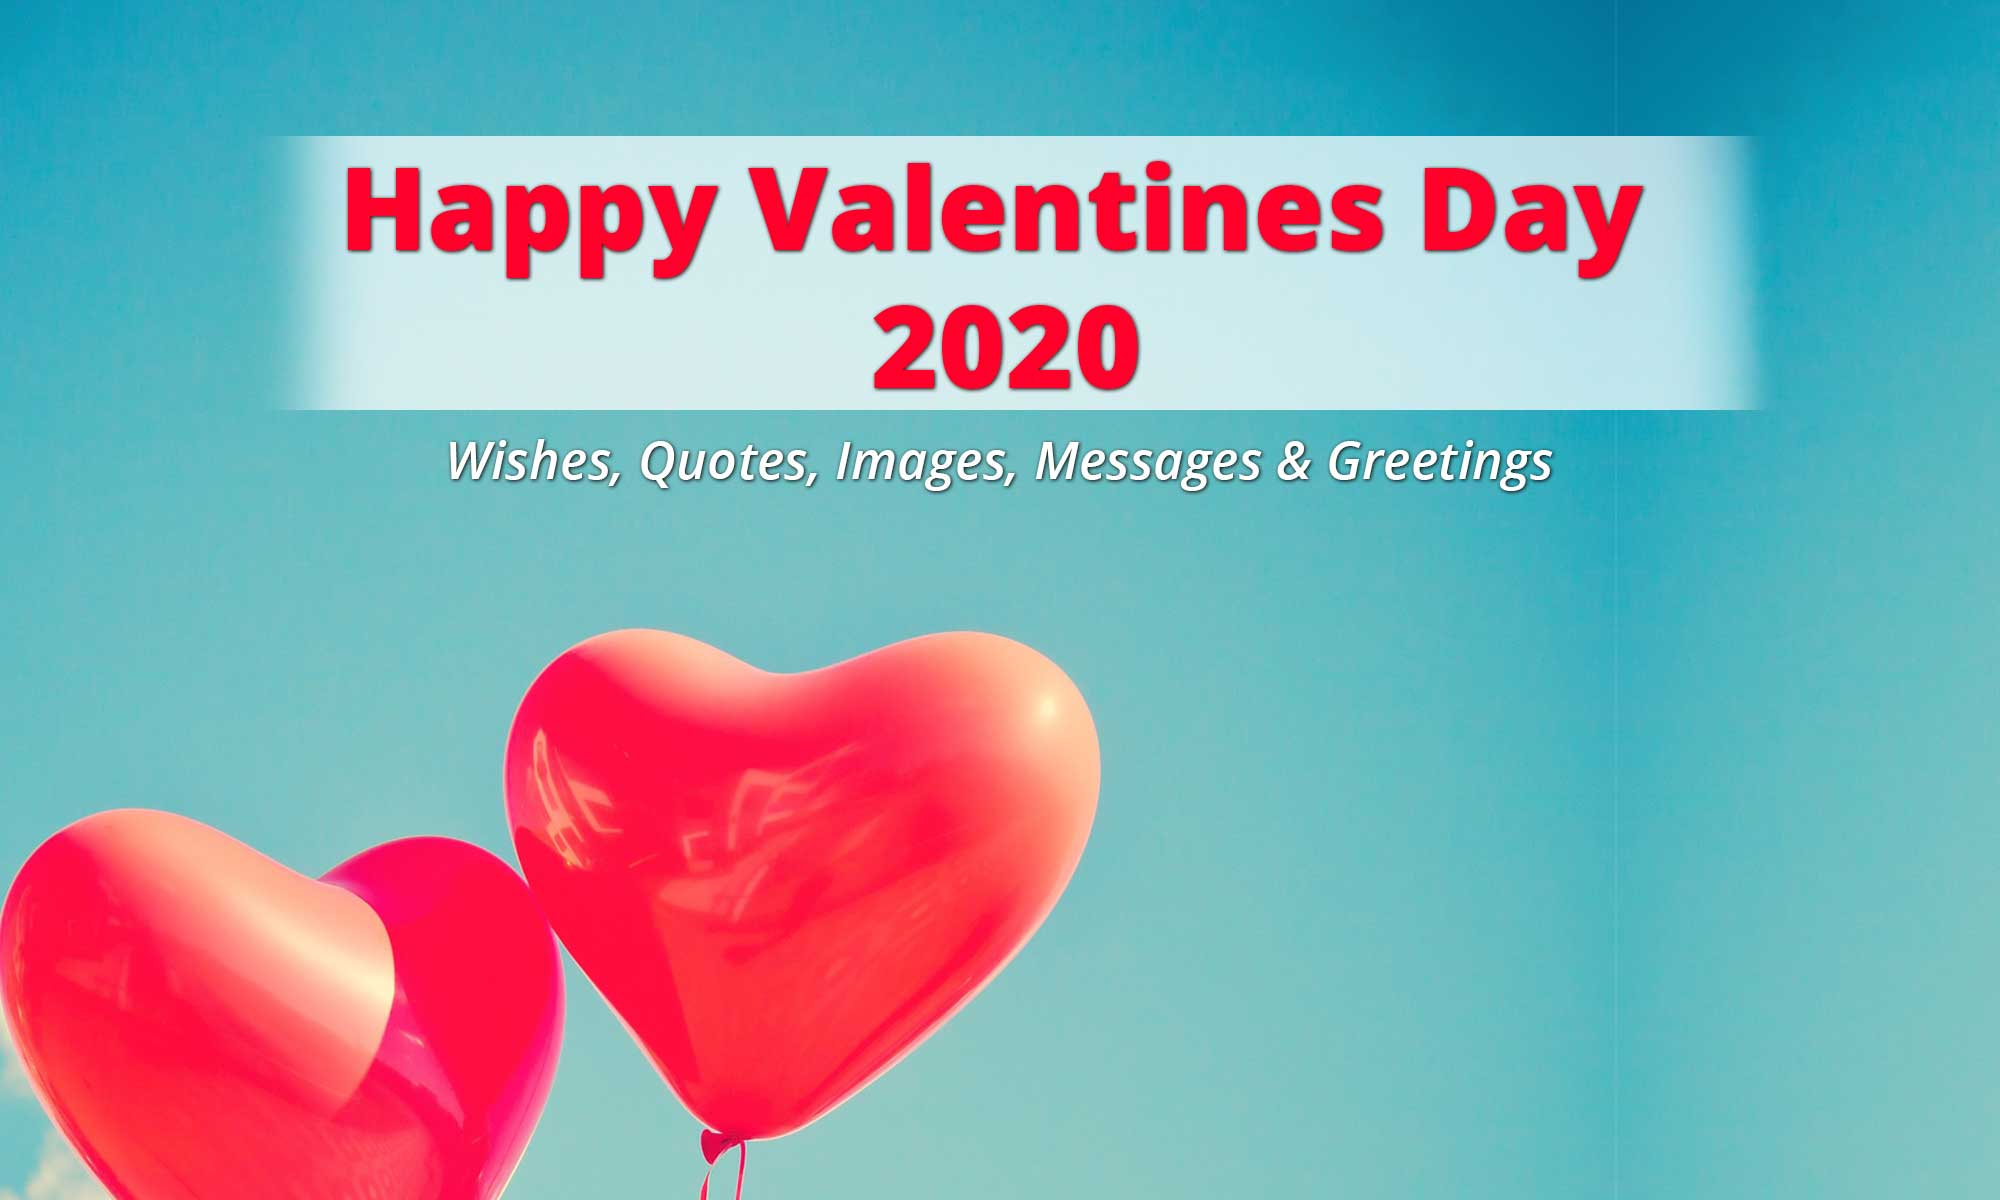 Happy Valentines Day 2020